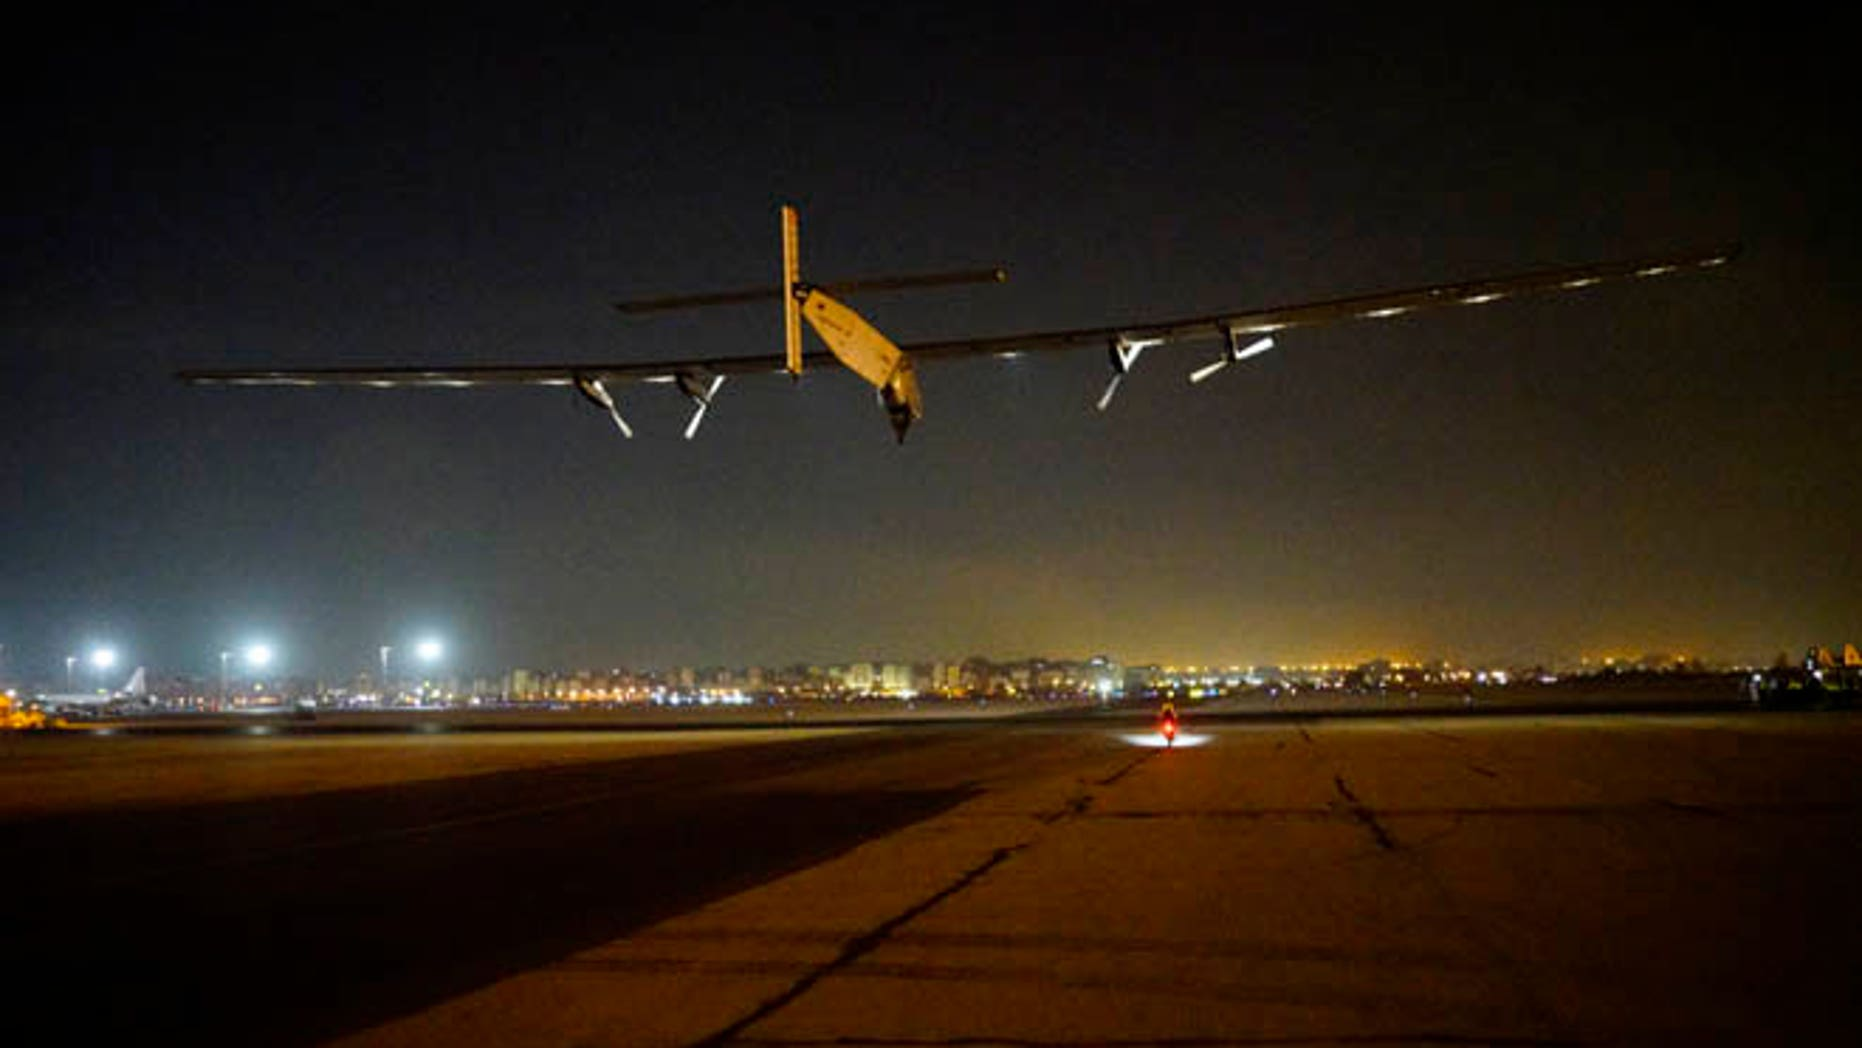 Solar Impulse took off from Cairo, and is headed toward Abu Dhabi for its final leg on the Round The World journey. Credit: Solar Impulse/Revillard